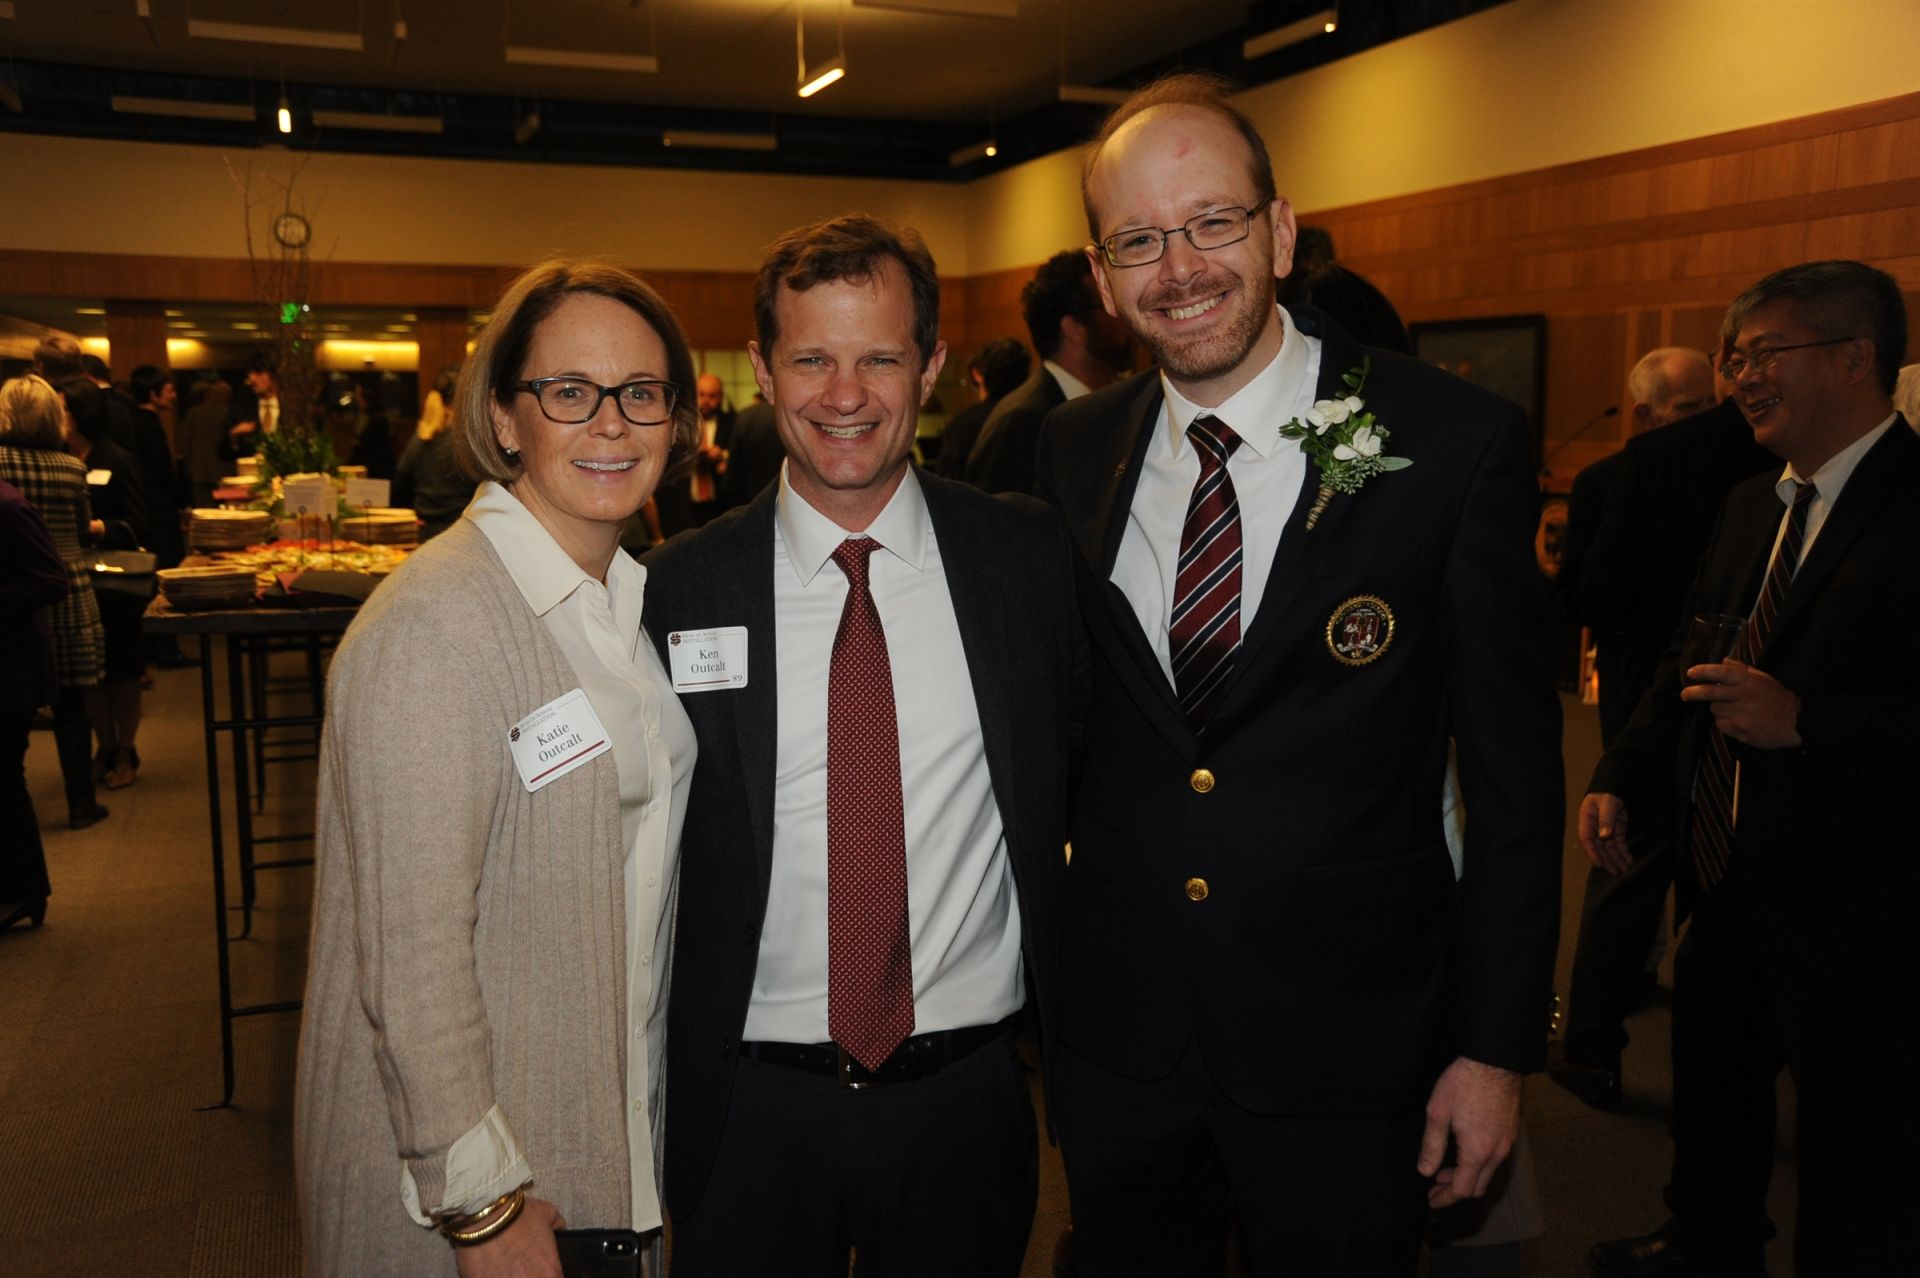 Katie and Ken Outcalt '89 with Head of School Patrick Gallagher